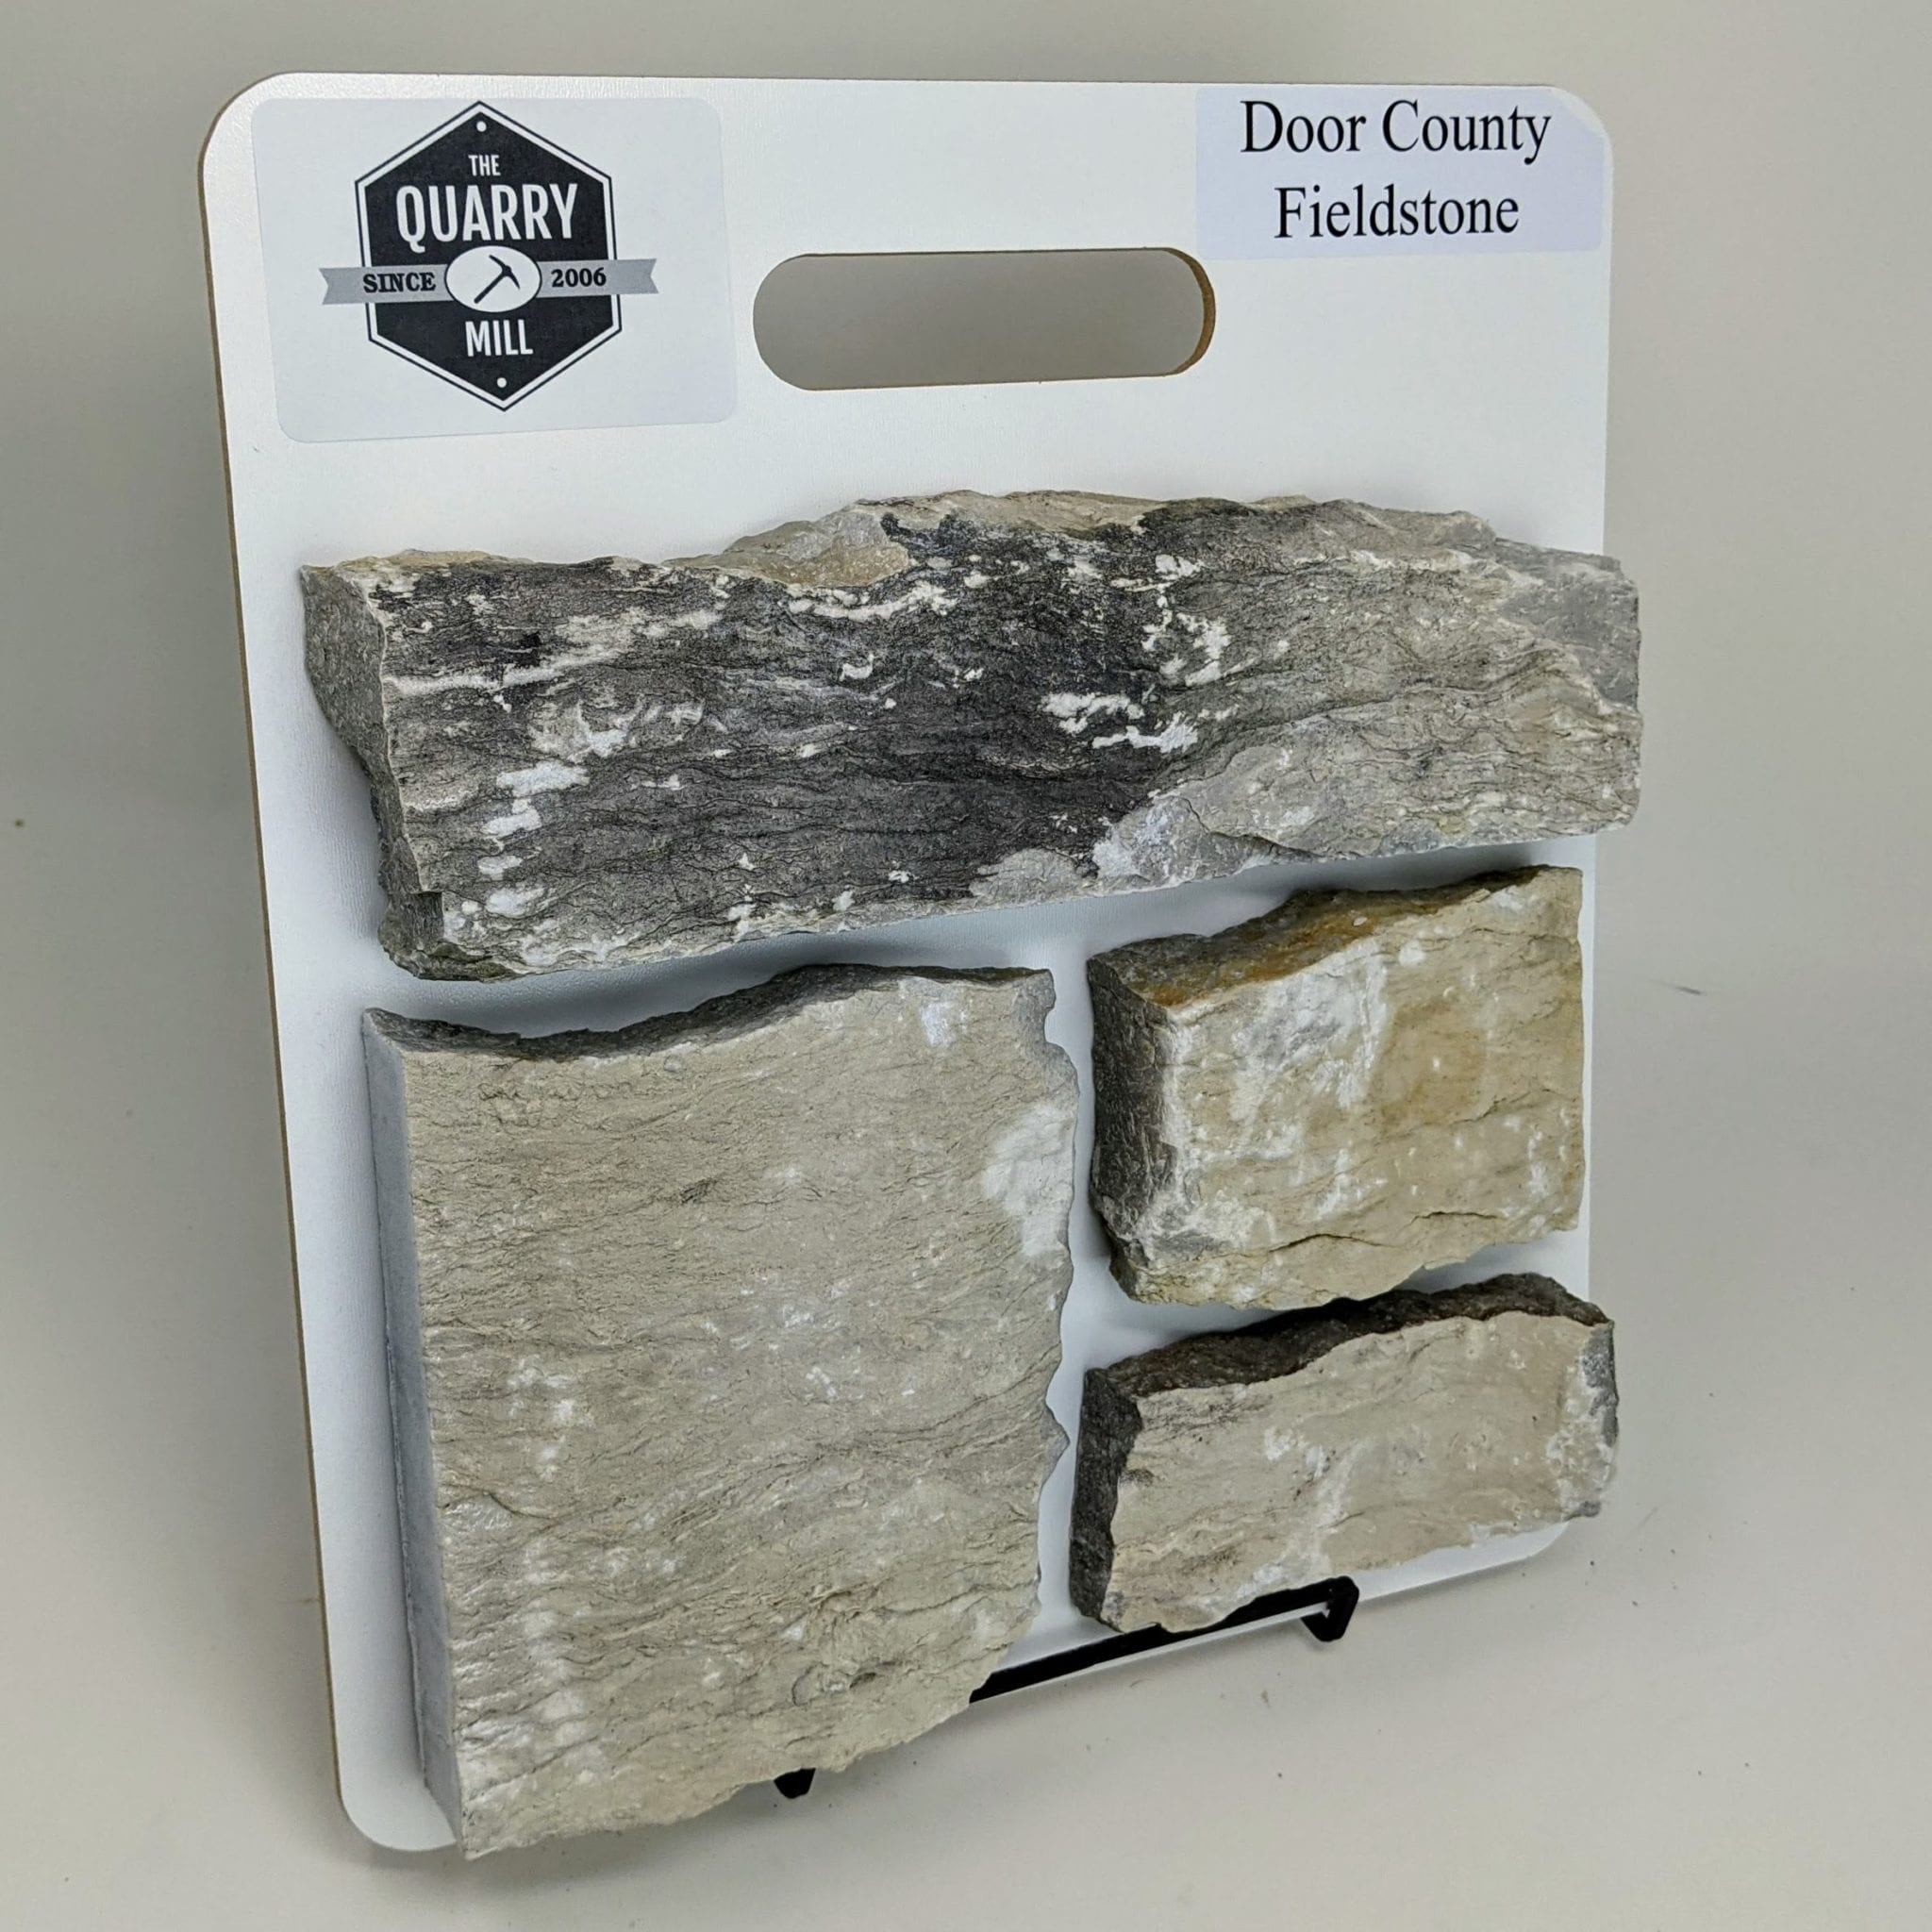 Door County Fieldstone Real Stone Veneer Sample Board